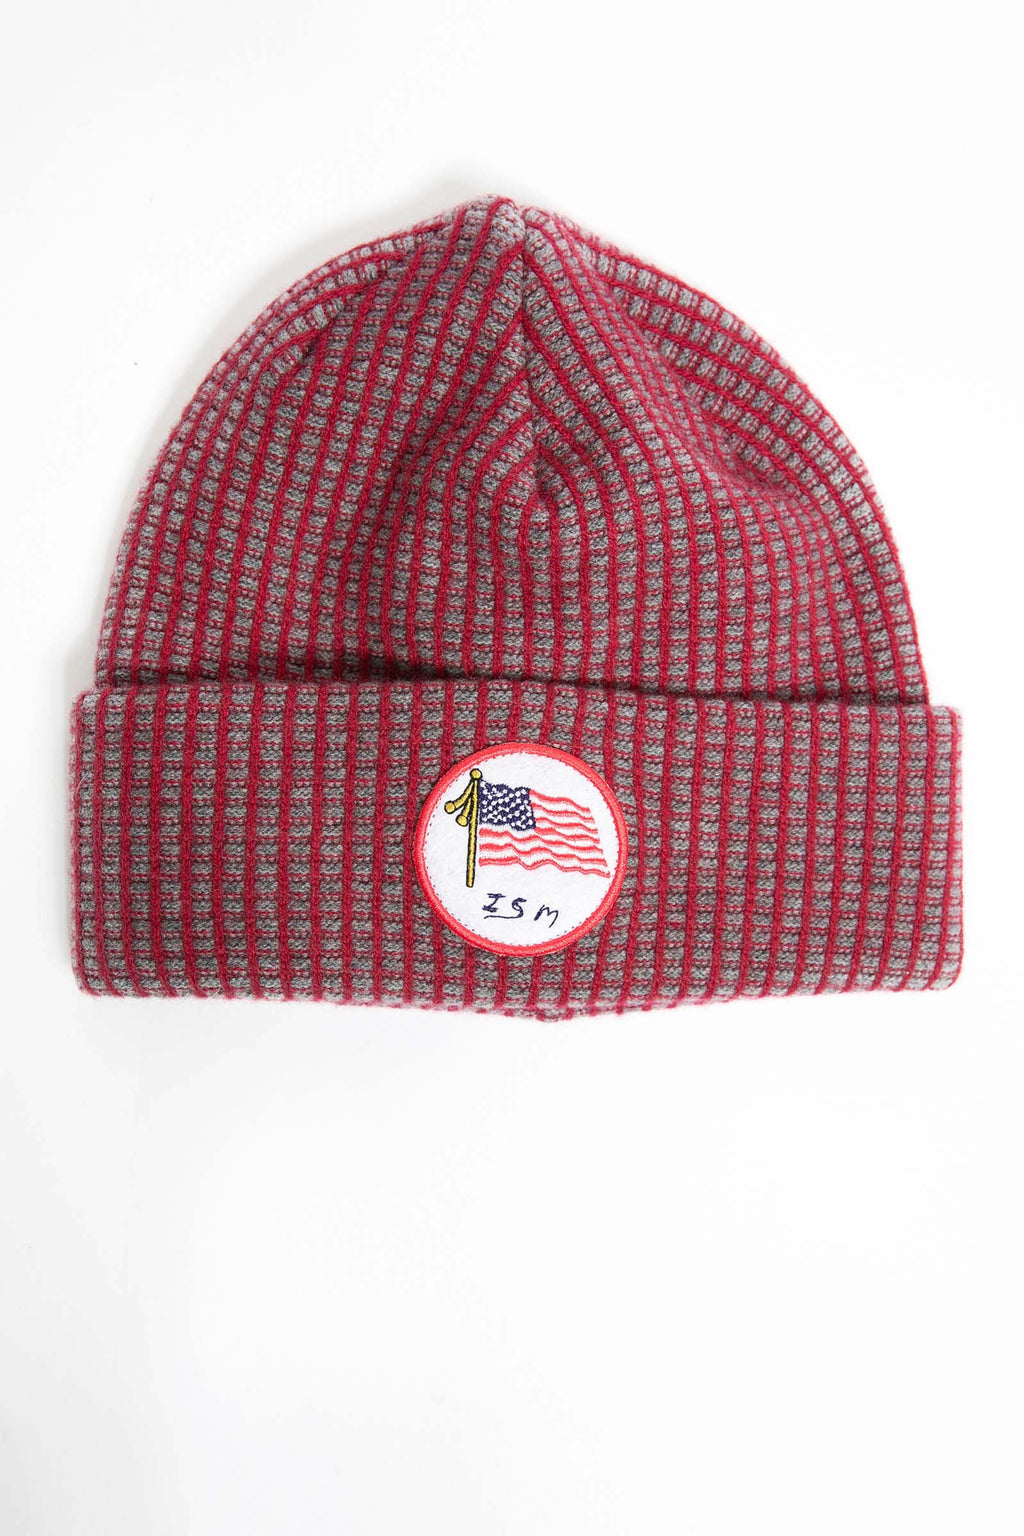 I.S.M. 'American Flag' Red Cashmere Beanie